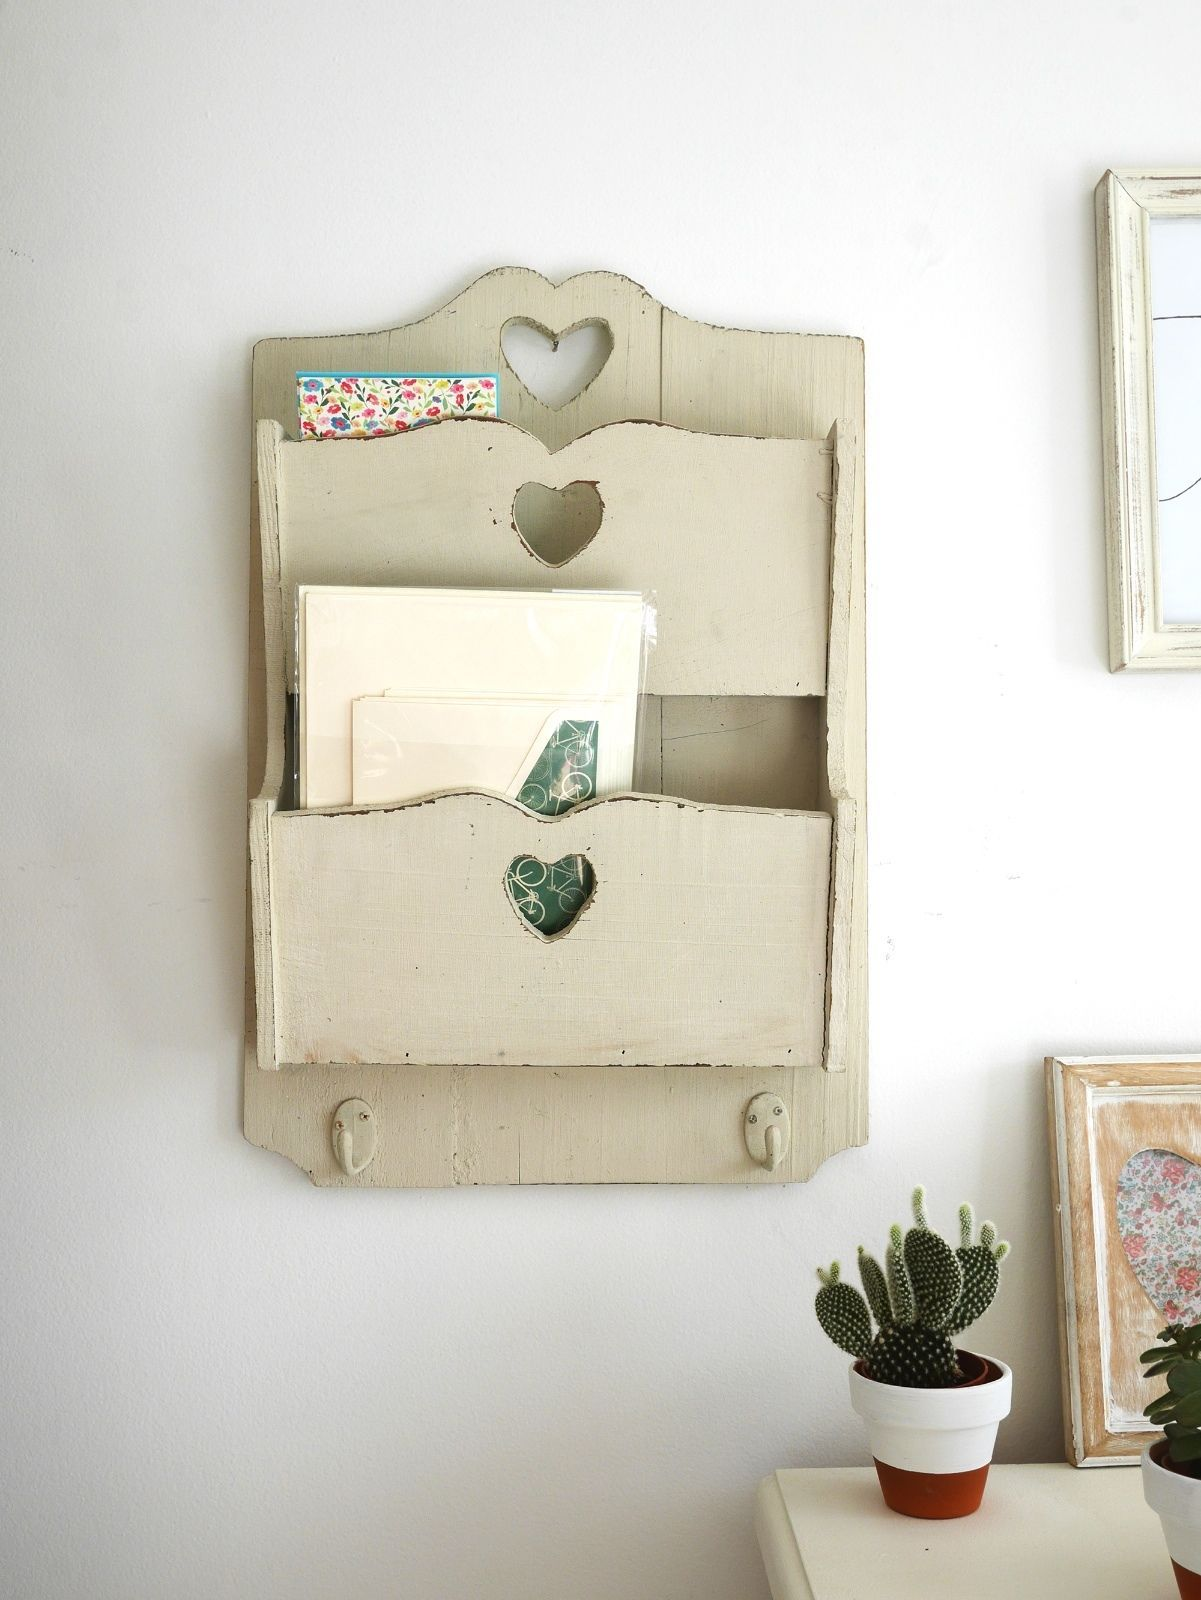 Vintage Shabby Chic Letter and Key Holder Rack Wall